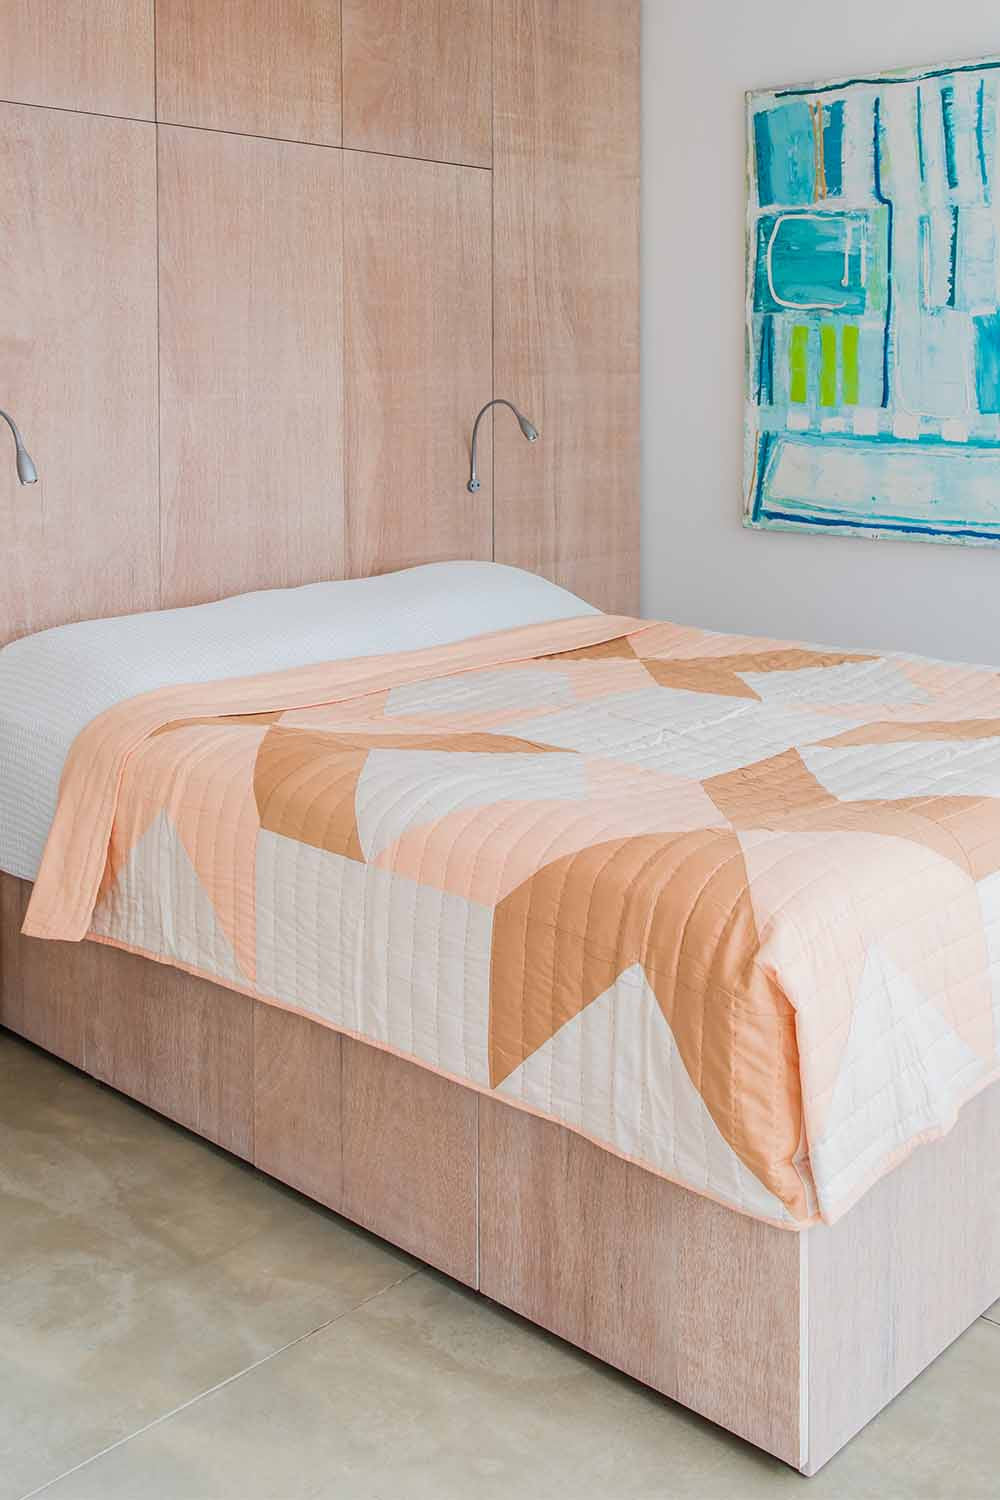 Aneau Aquila Bedroom Quilt